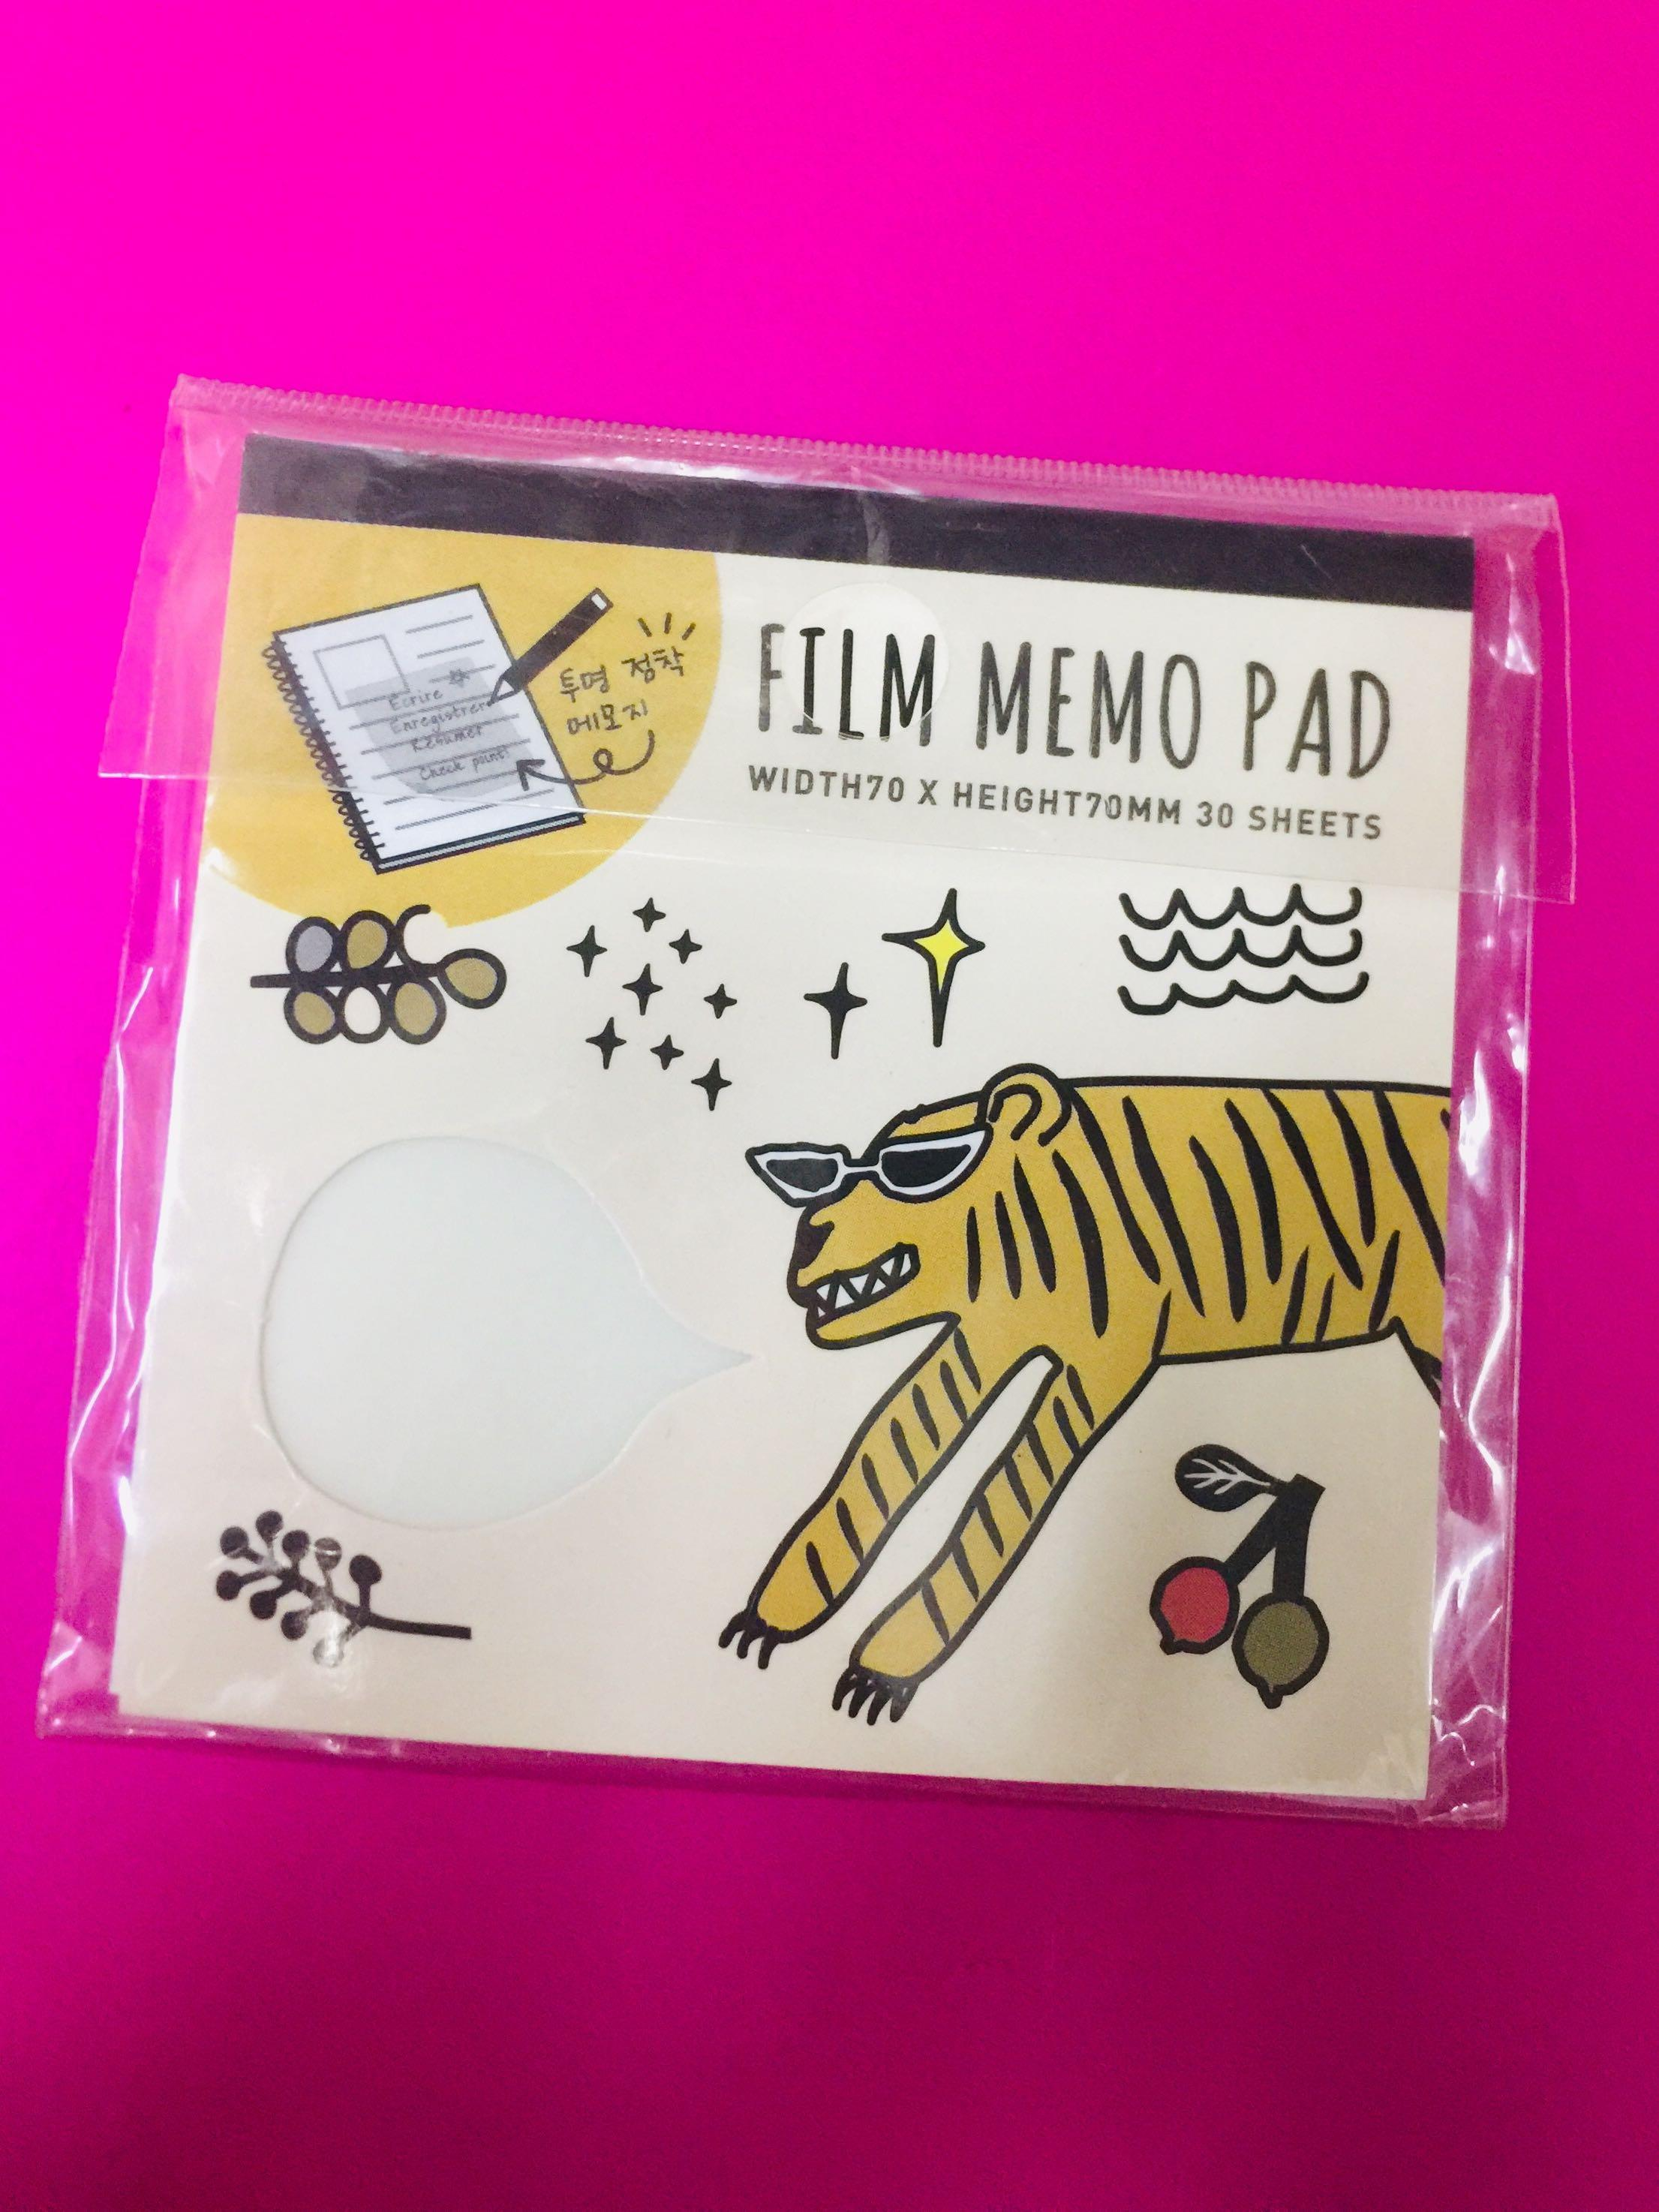 30 sheets Film Memo Pad